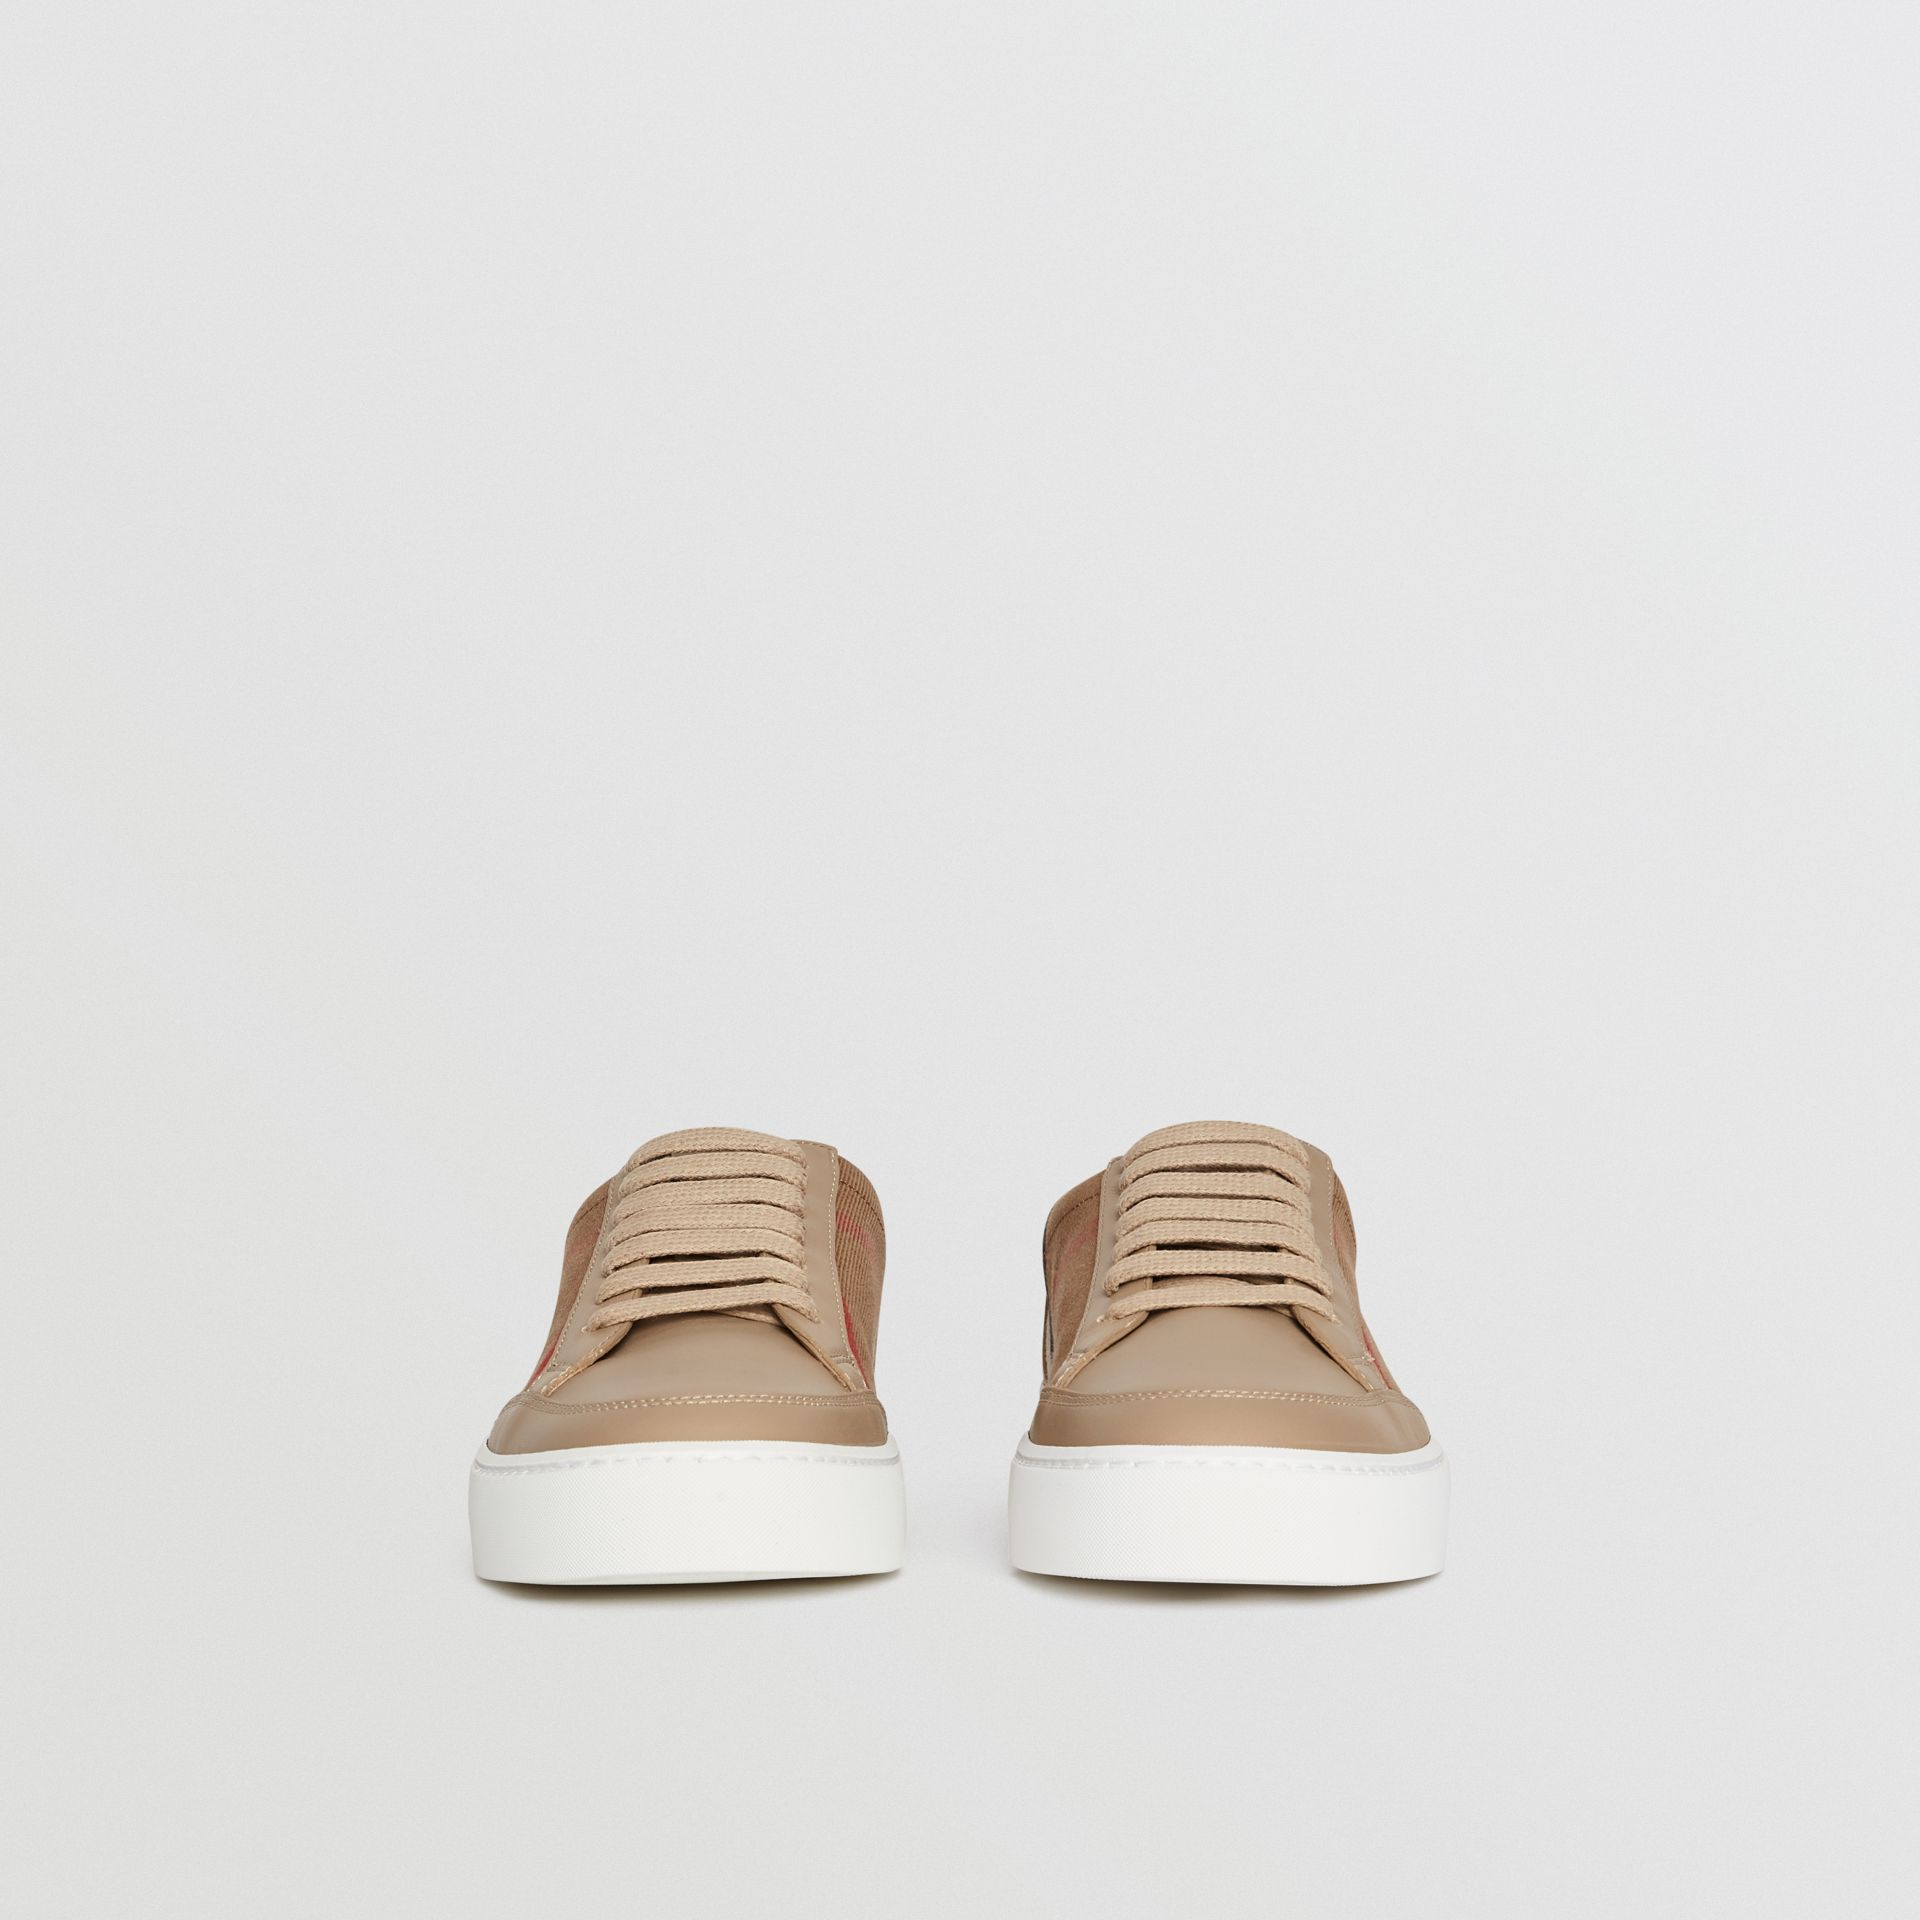 Check Detail Leather Sneakers in House Check/ Nude - Women | Burberry Australia - gallery image 3